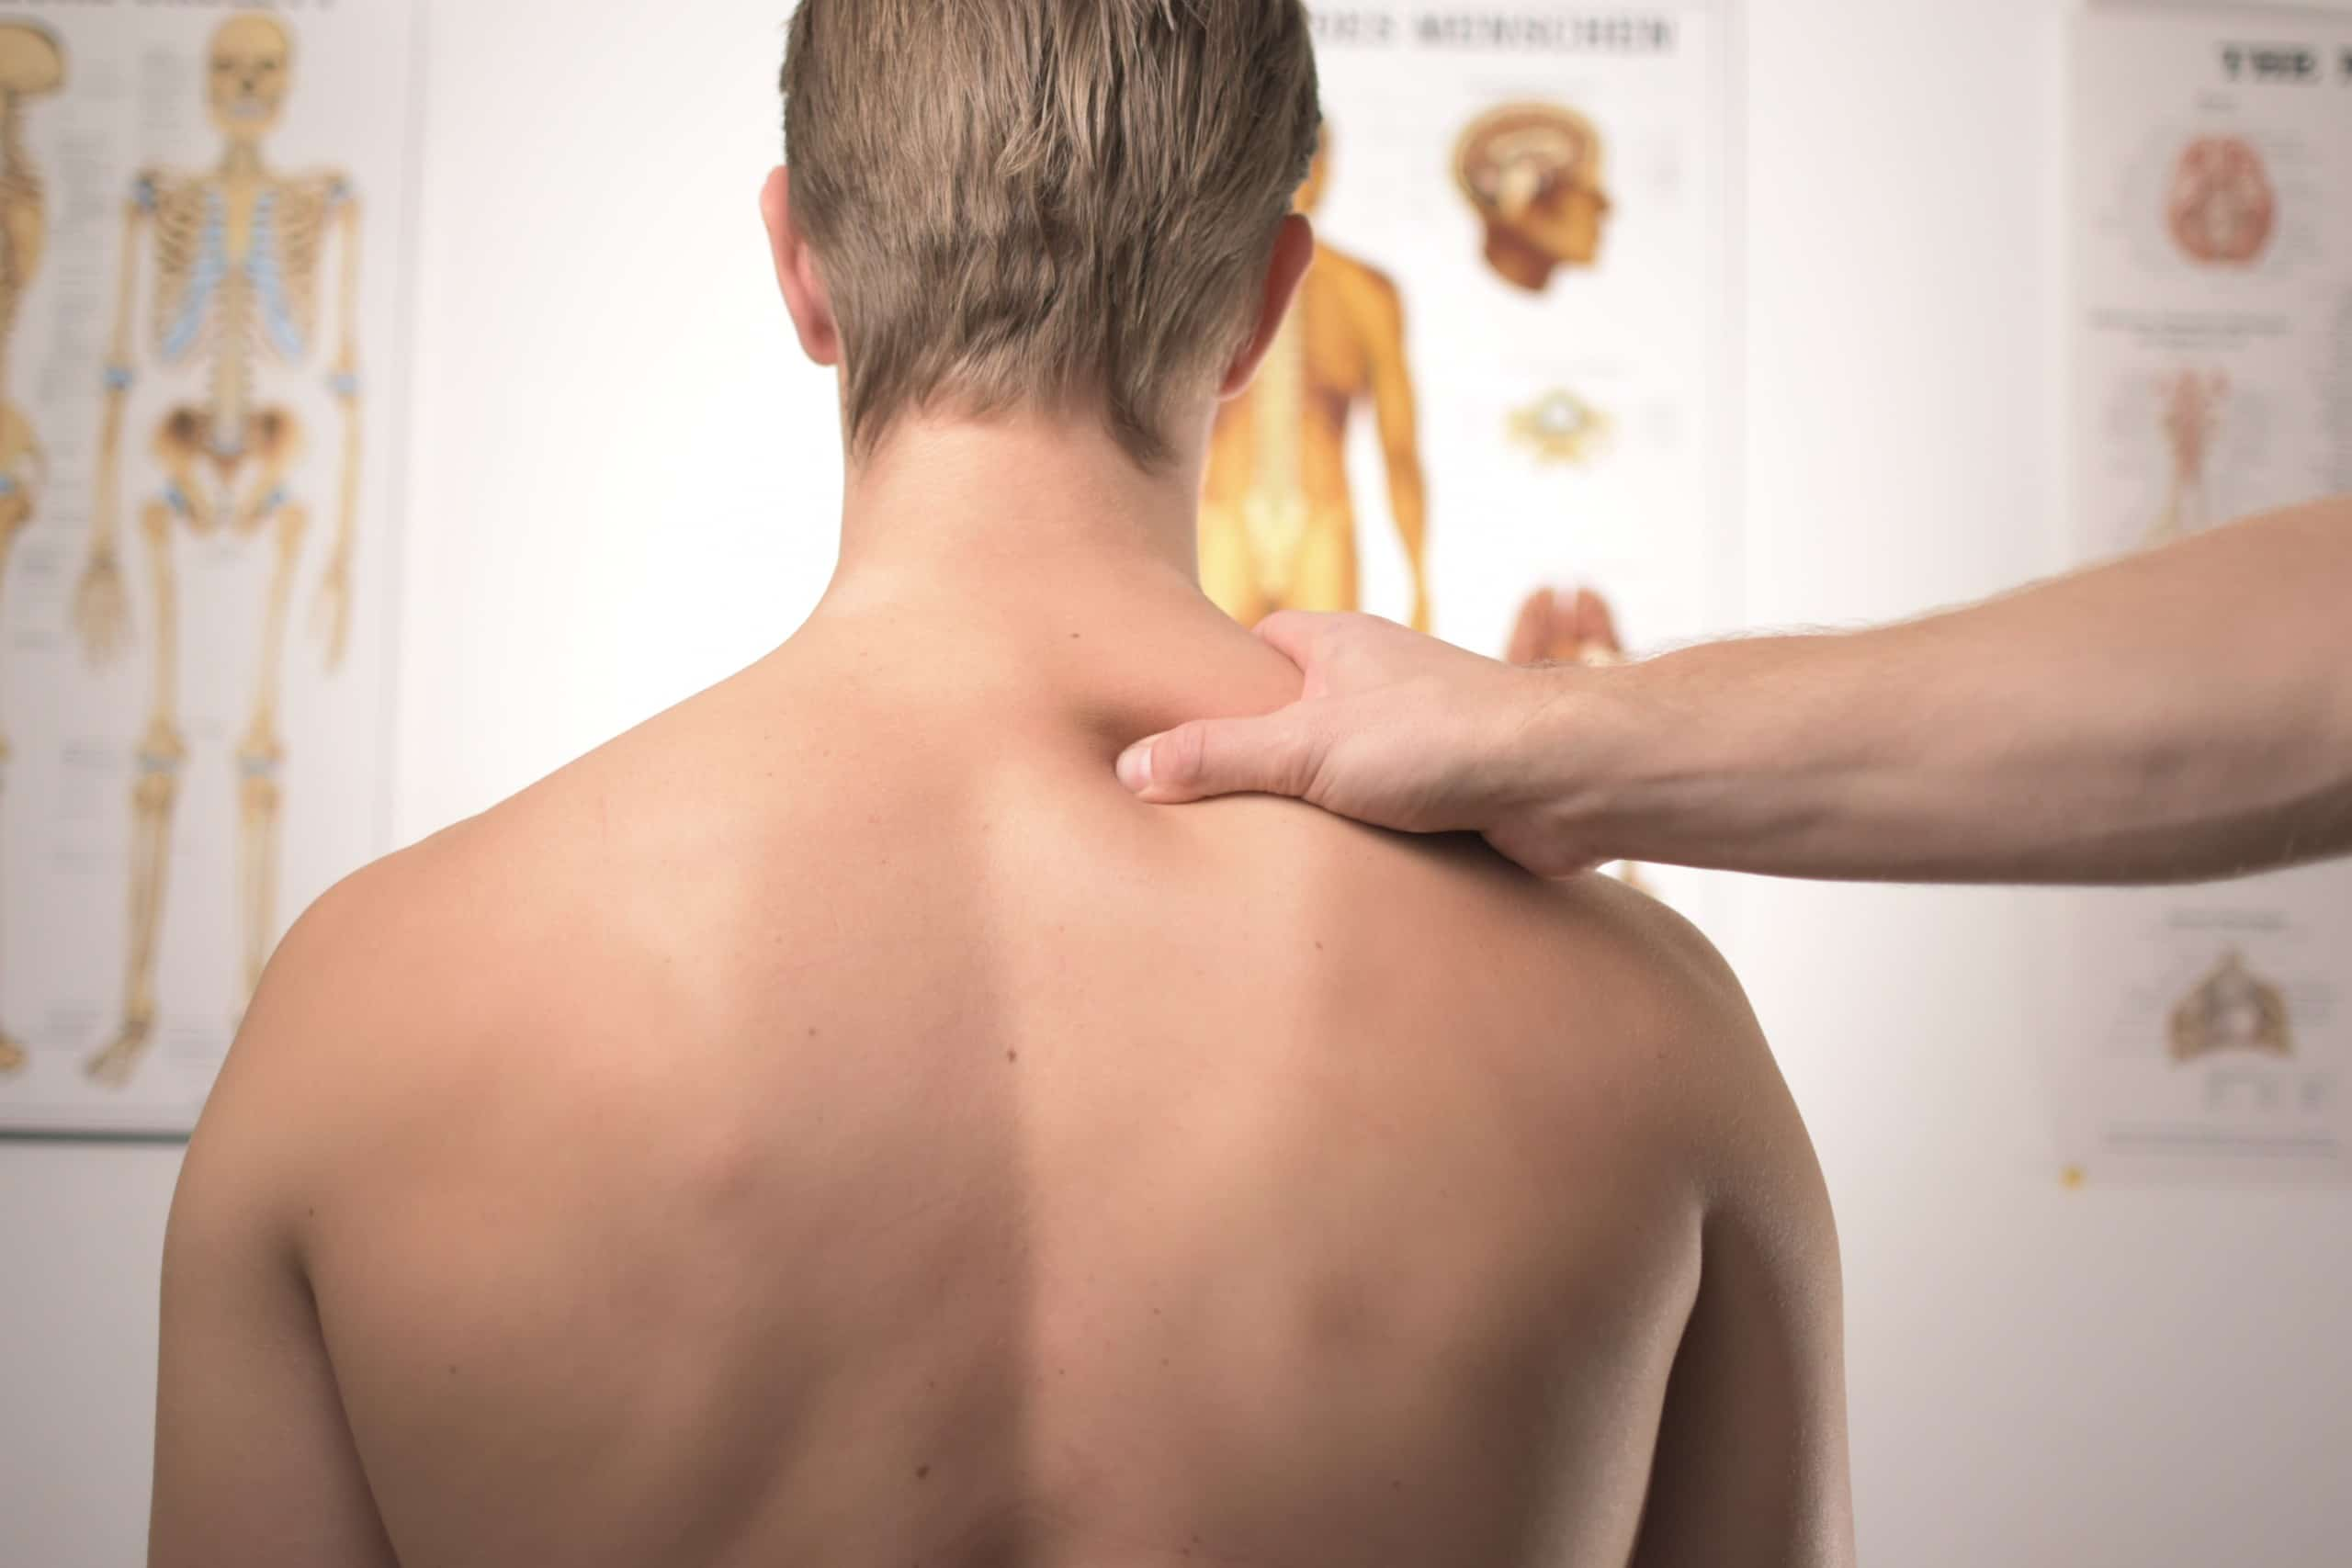 Is acupuncture good for back pain?